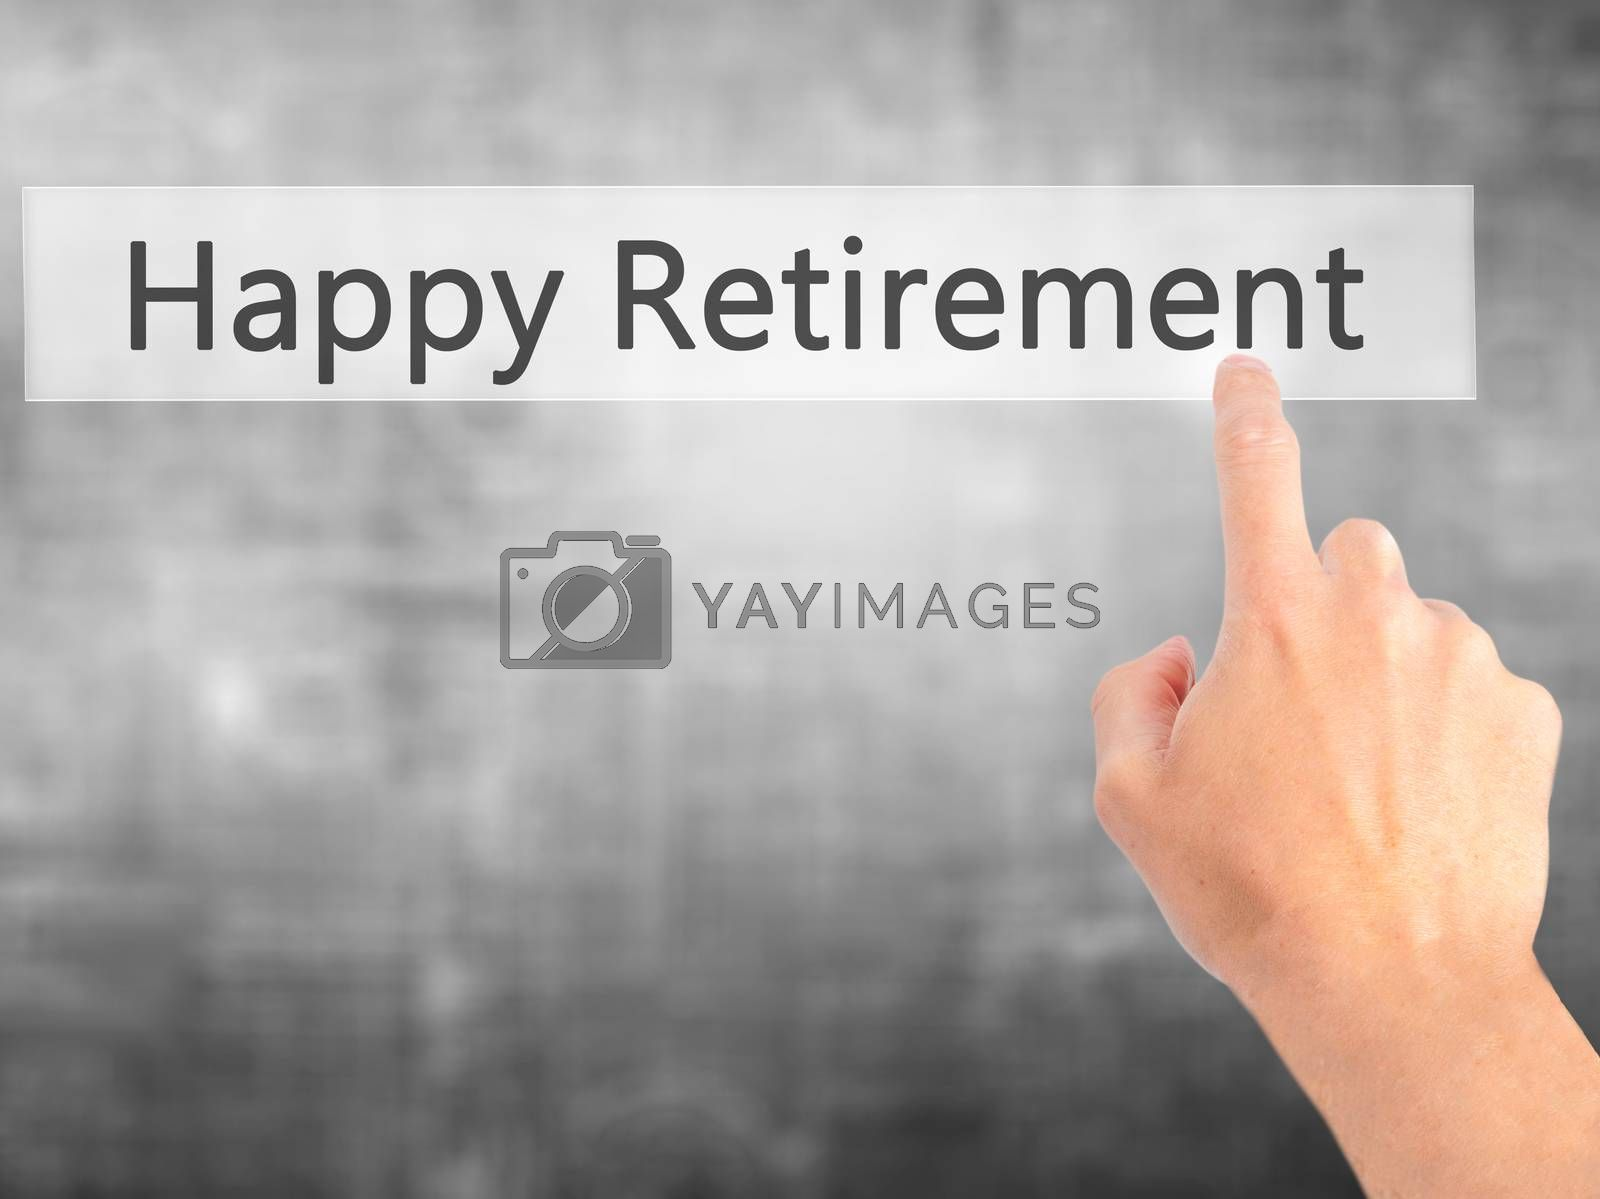 Happy Retirement - Hand pressing a button on blurred background  by jackald